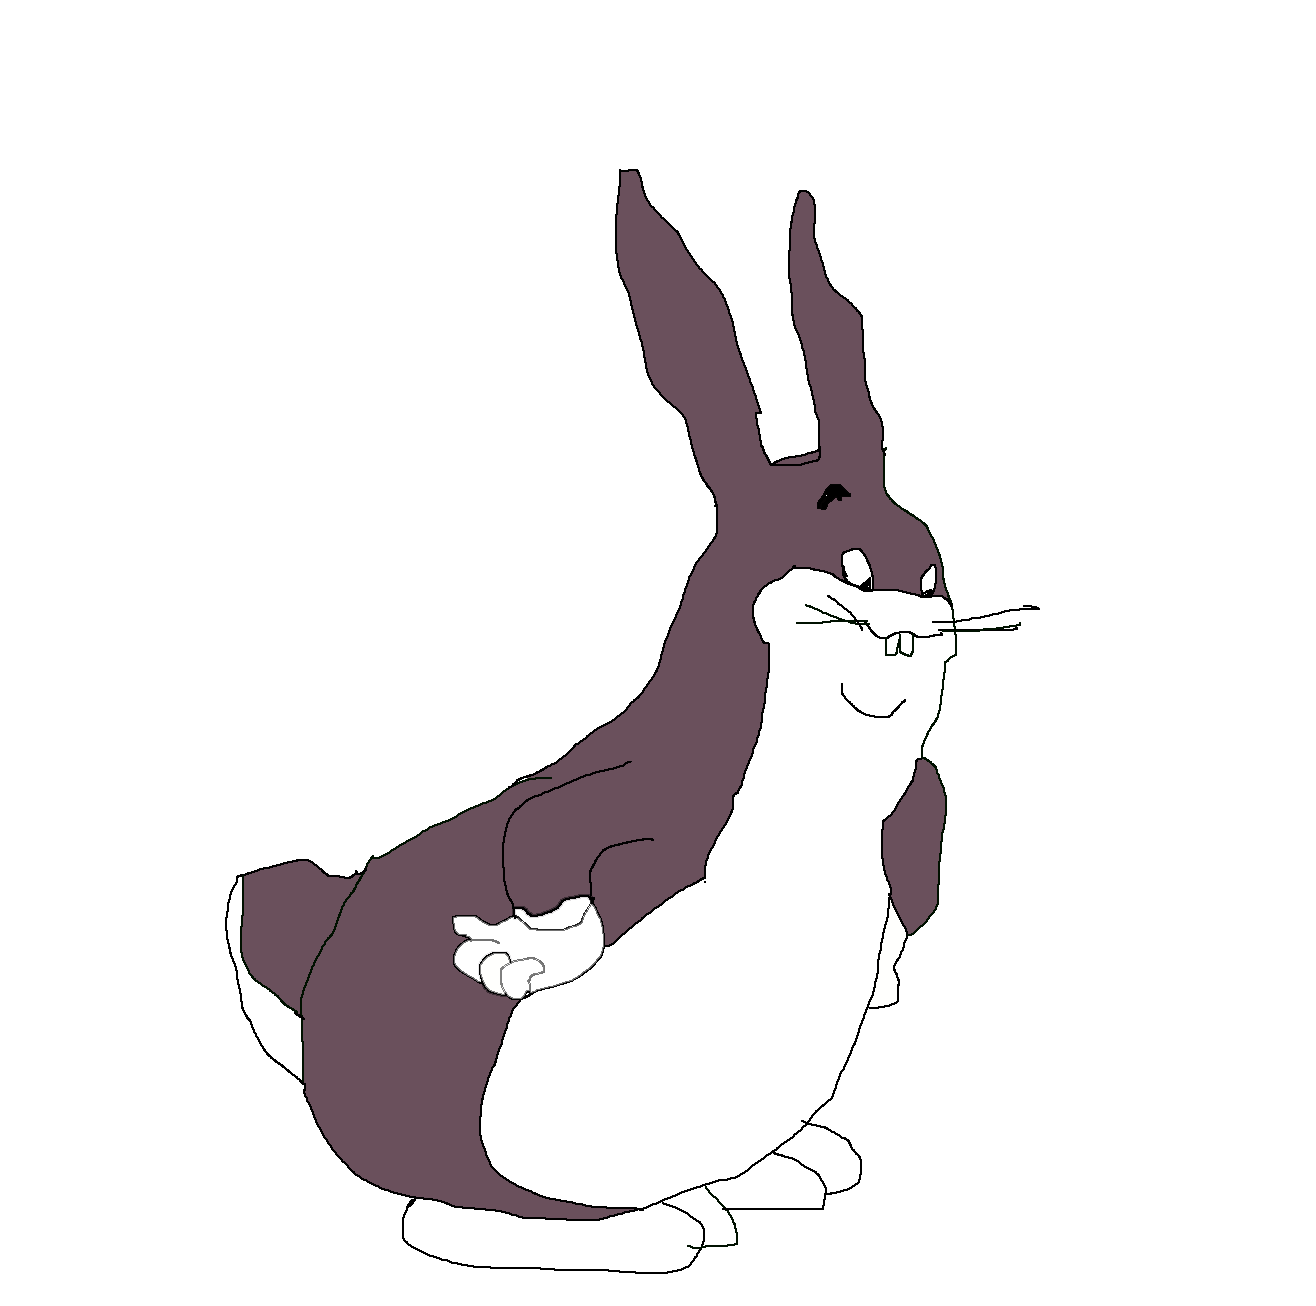 Big chungus clipart white background. Here i made an